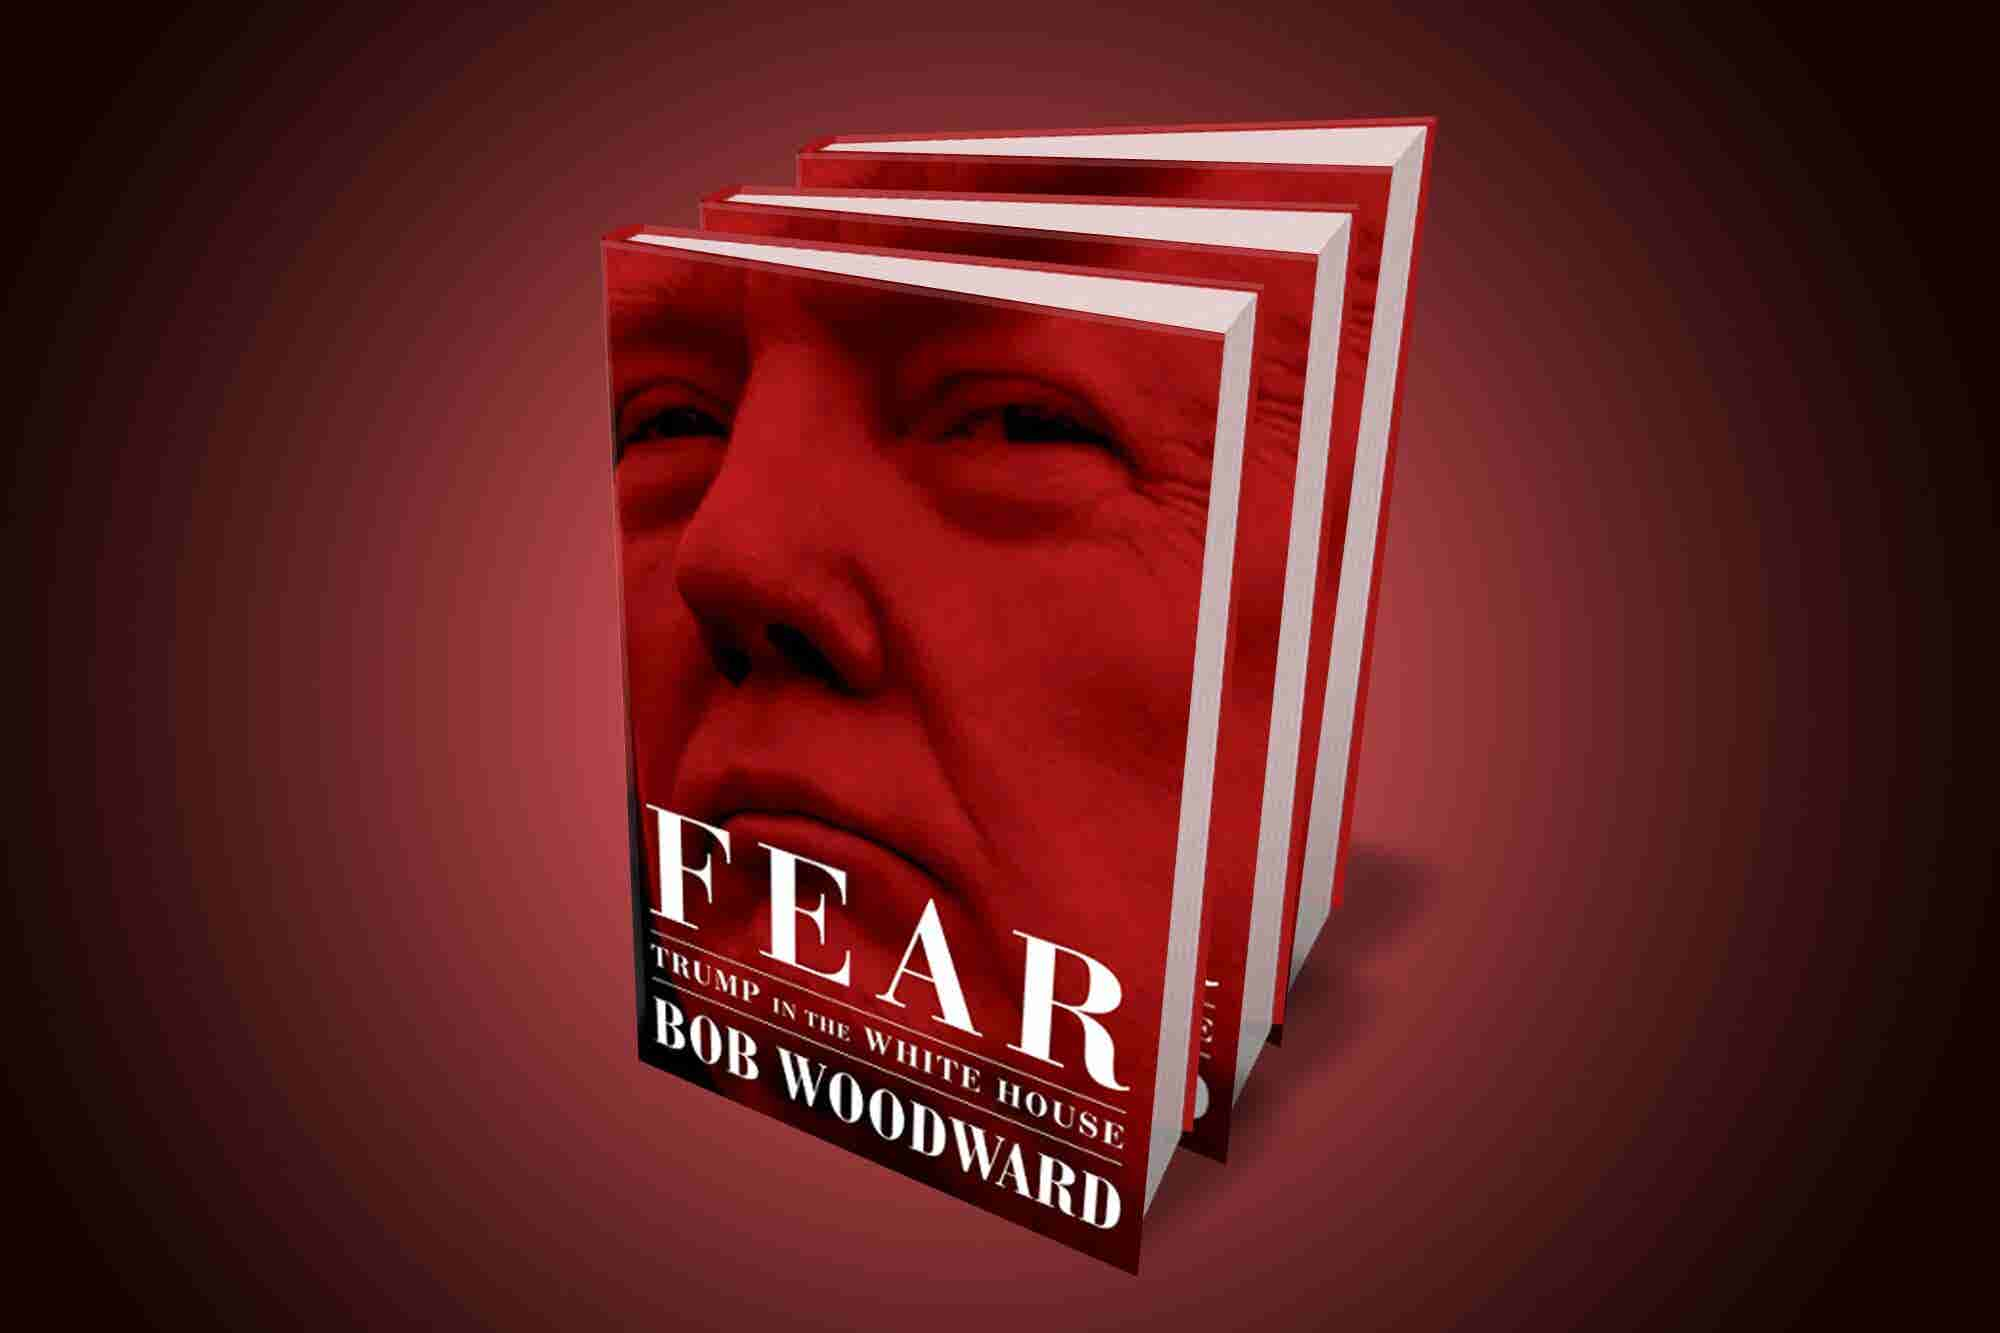 Bob Woodward's 'Fear' Is the Latest Example of How the Trump Bump Seems to Be Boosting Nonfiction Book Sales